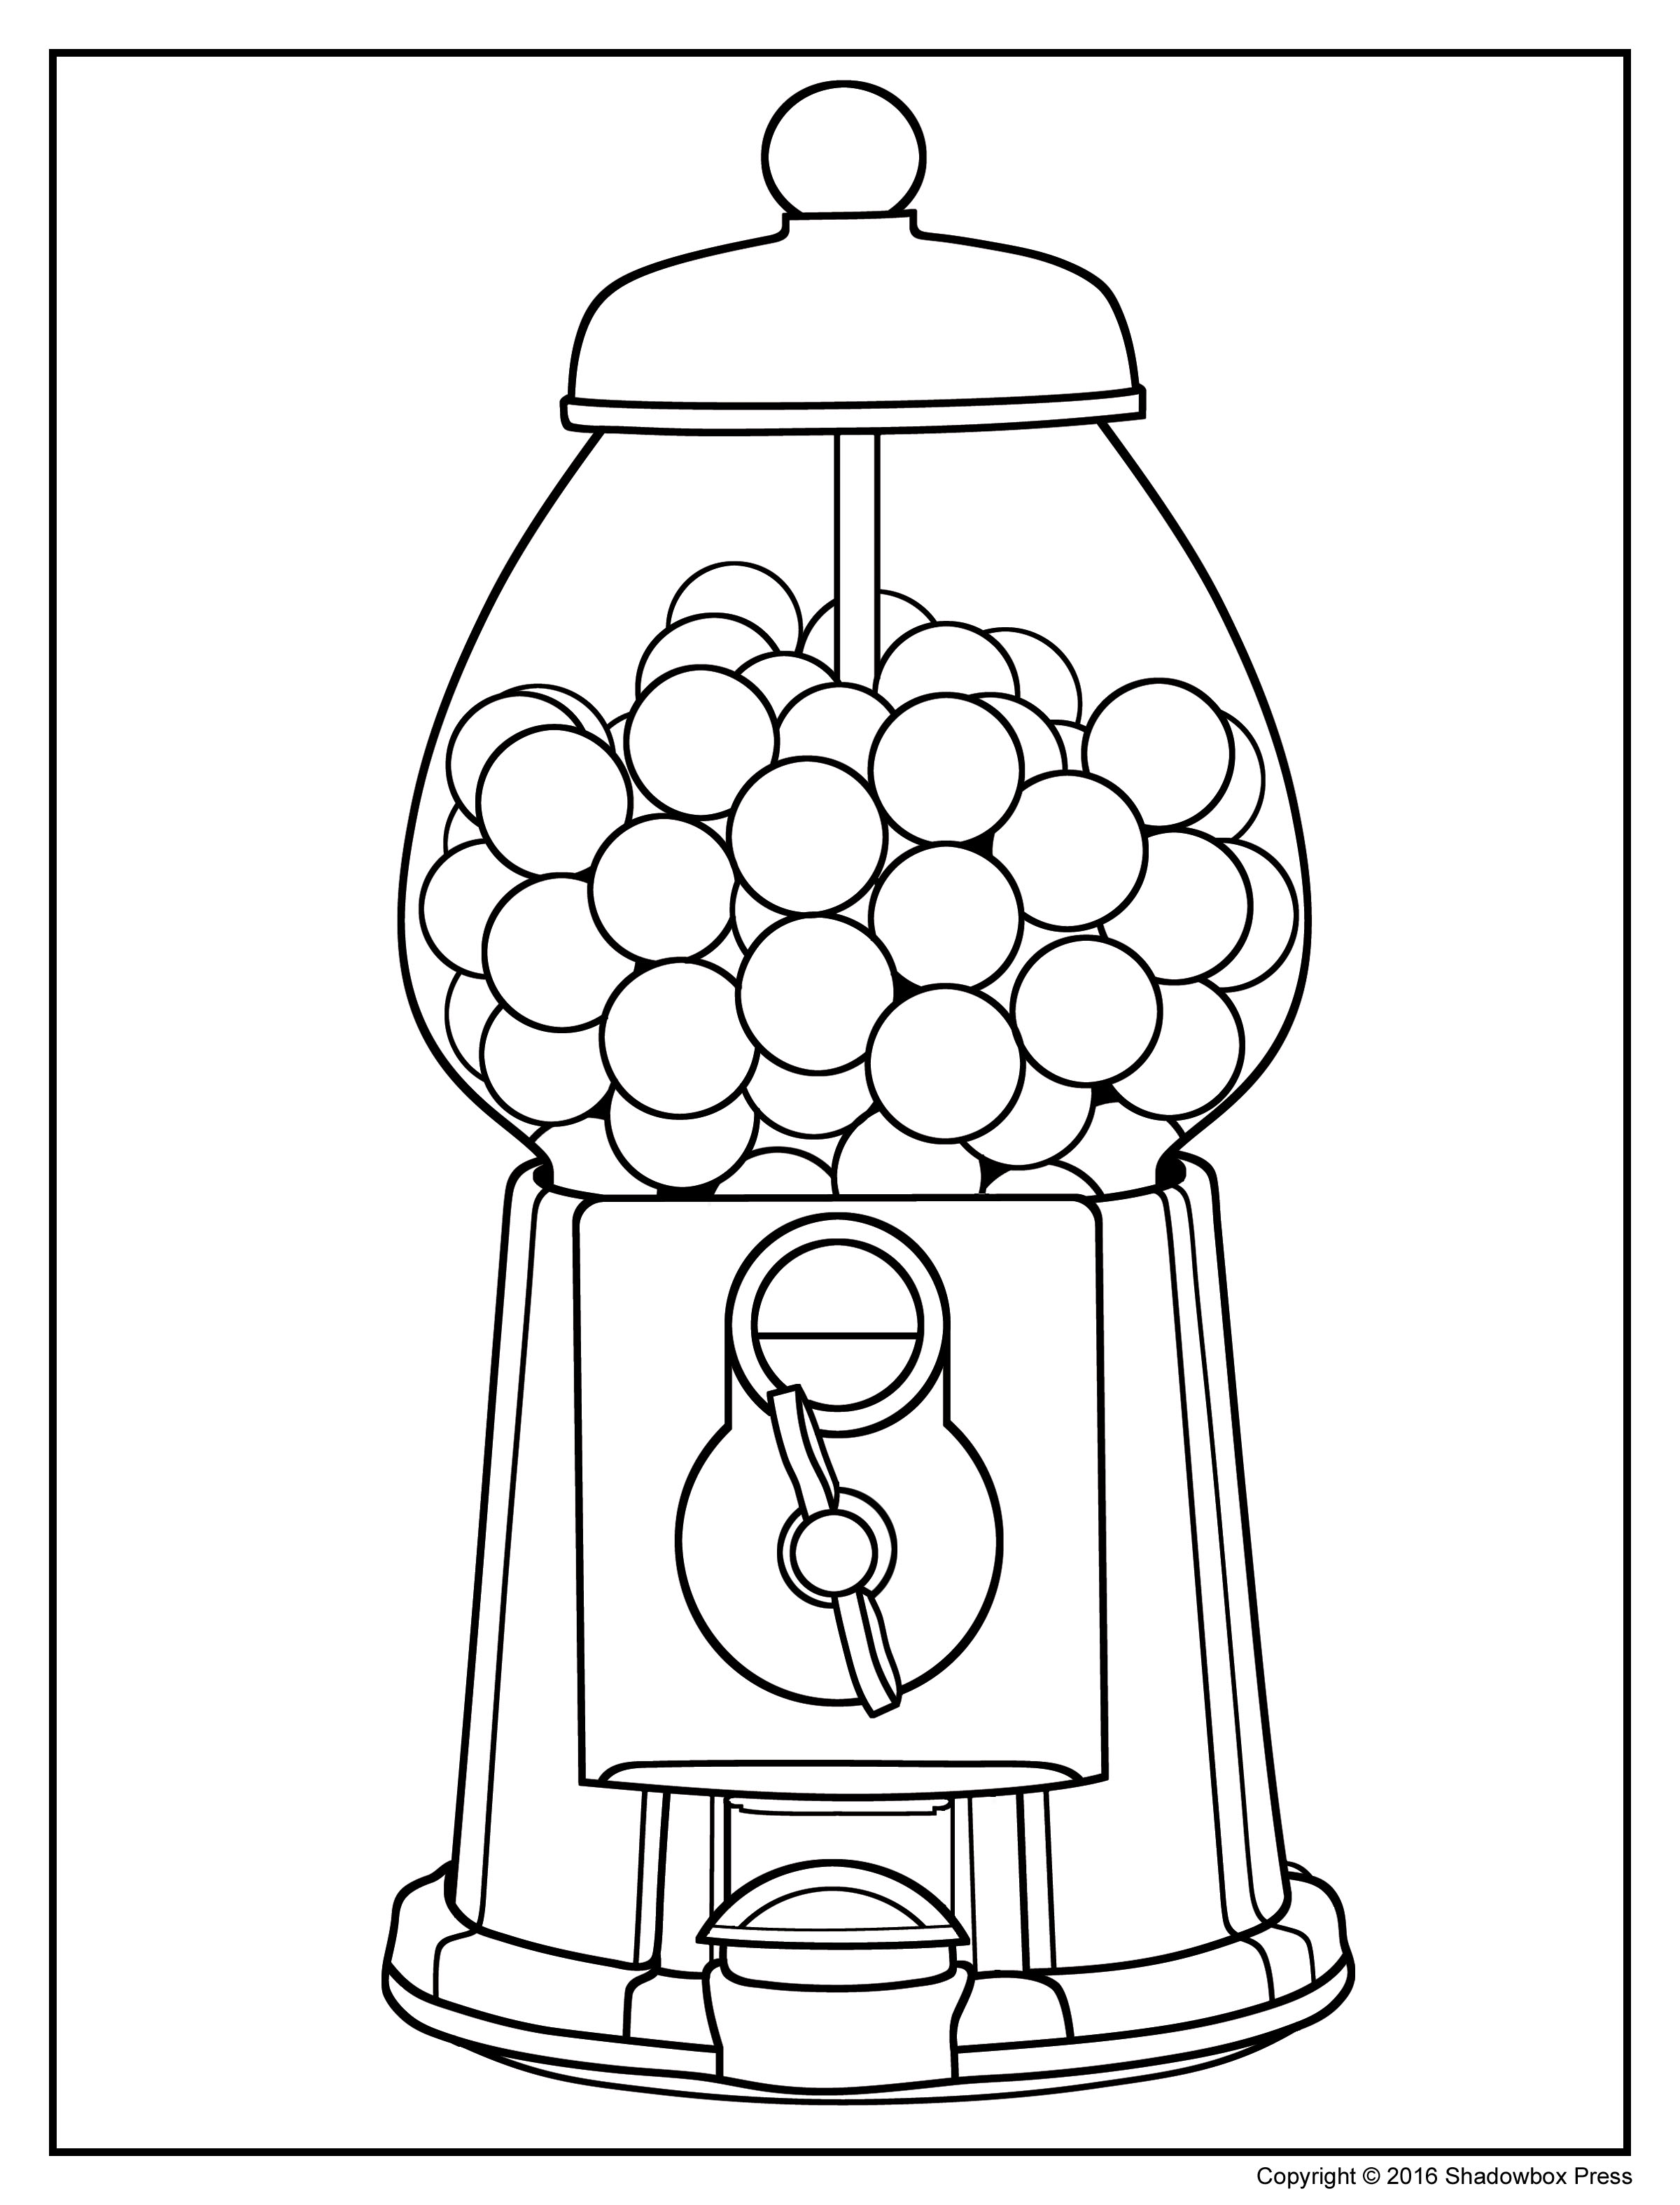 Machine Coloring Pages At Getdrawings